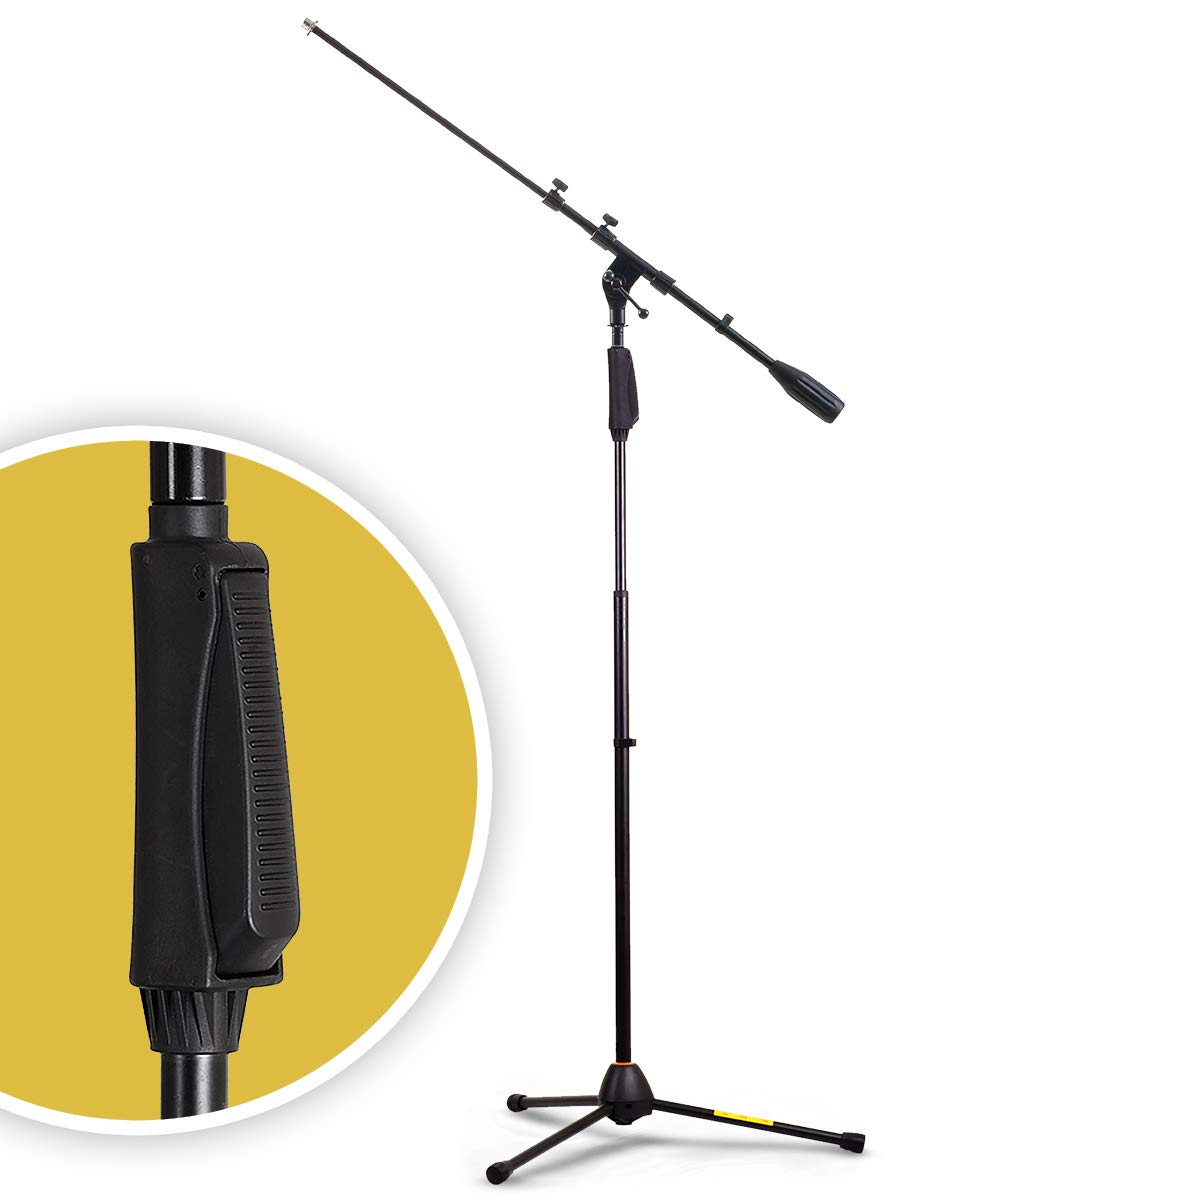 Round Base One Handed Microphone StandAdjustable heightOne Handed Grip